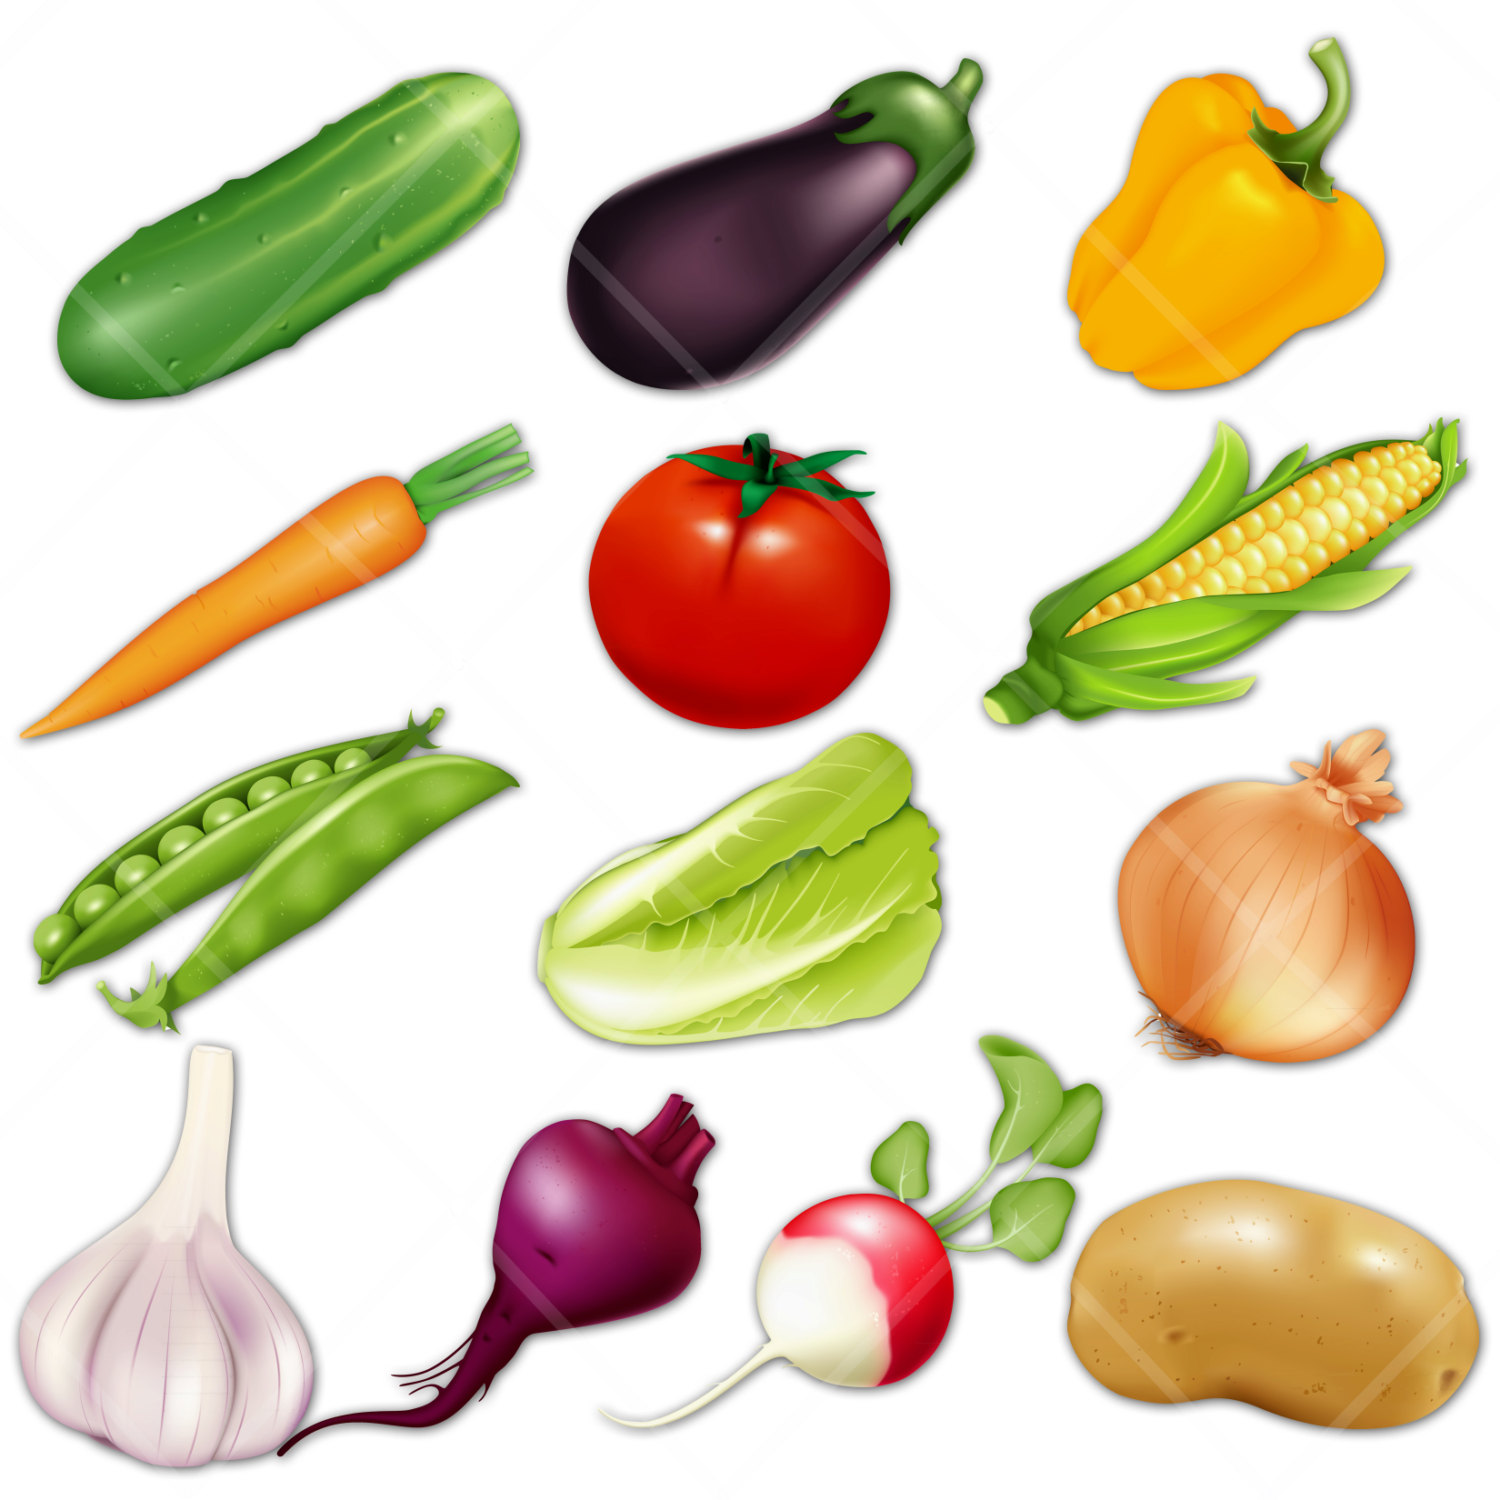 Vegetables Clipart & Vegetables Clip Art Images.